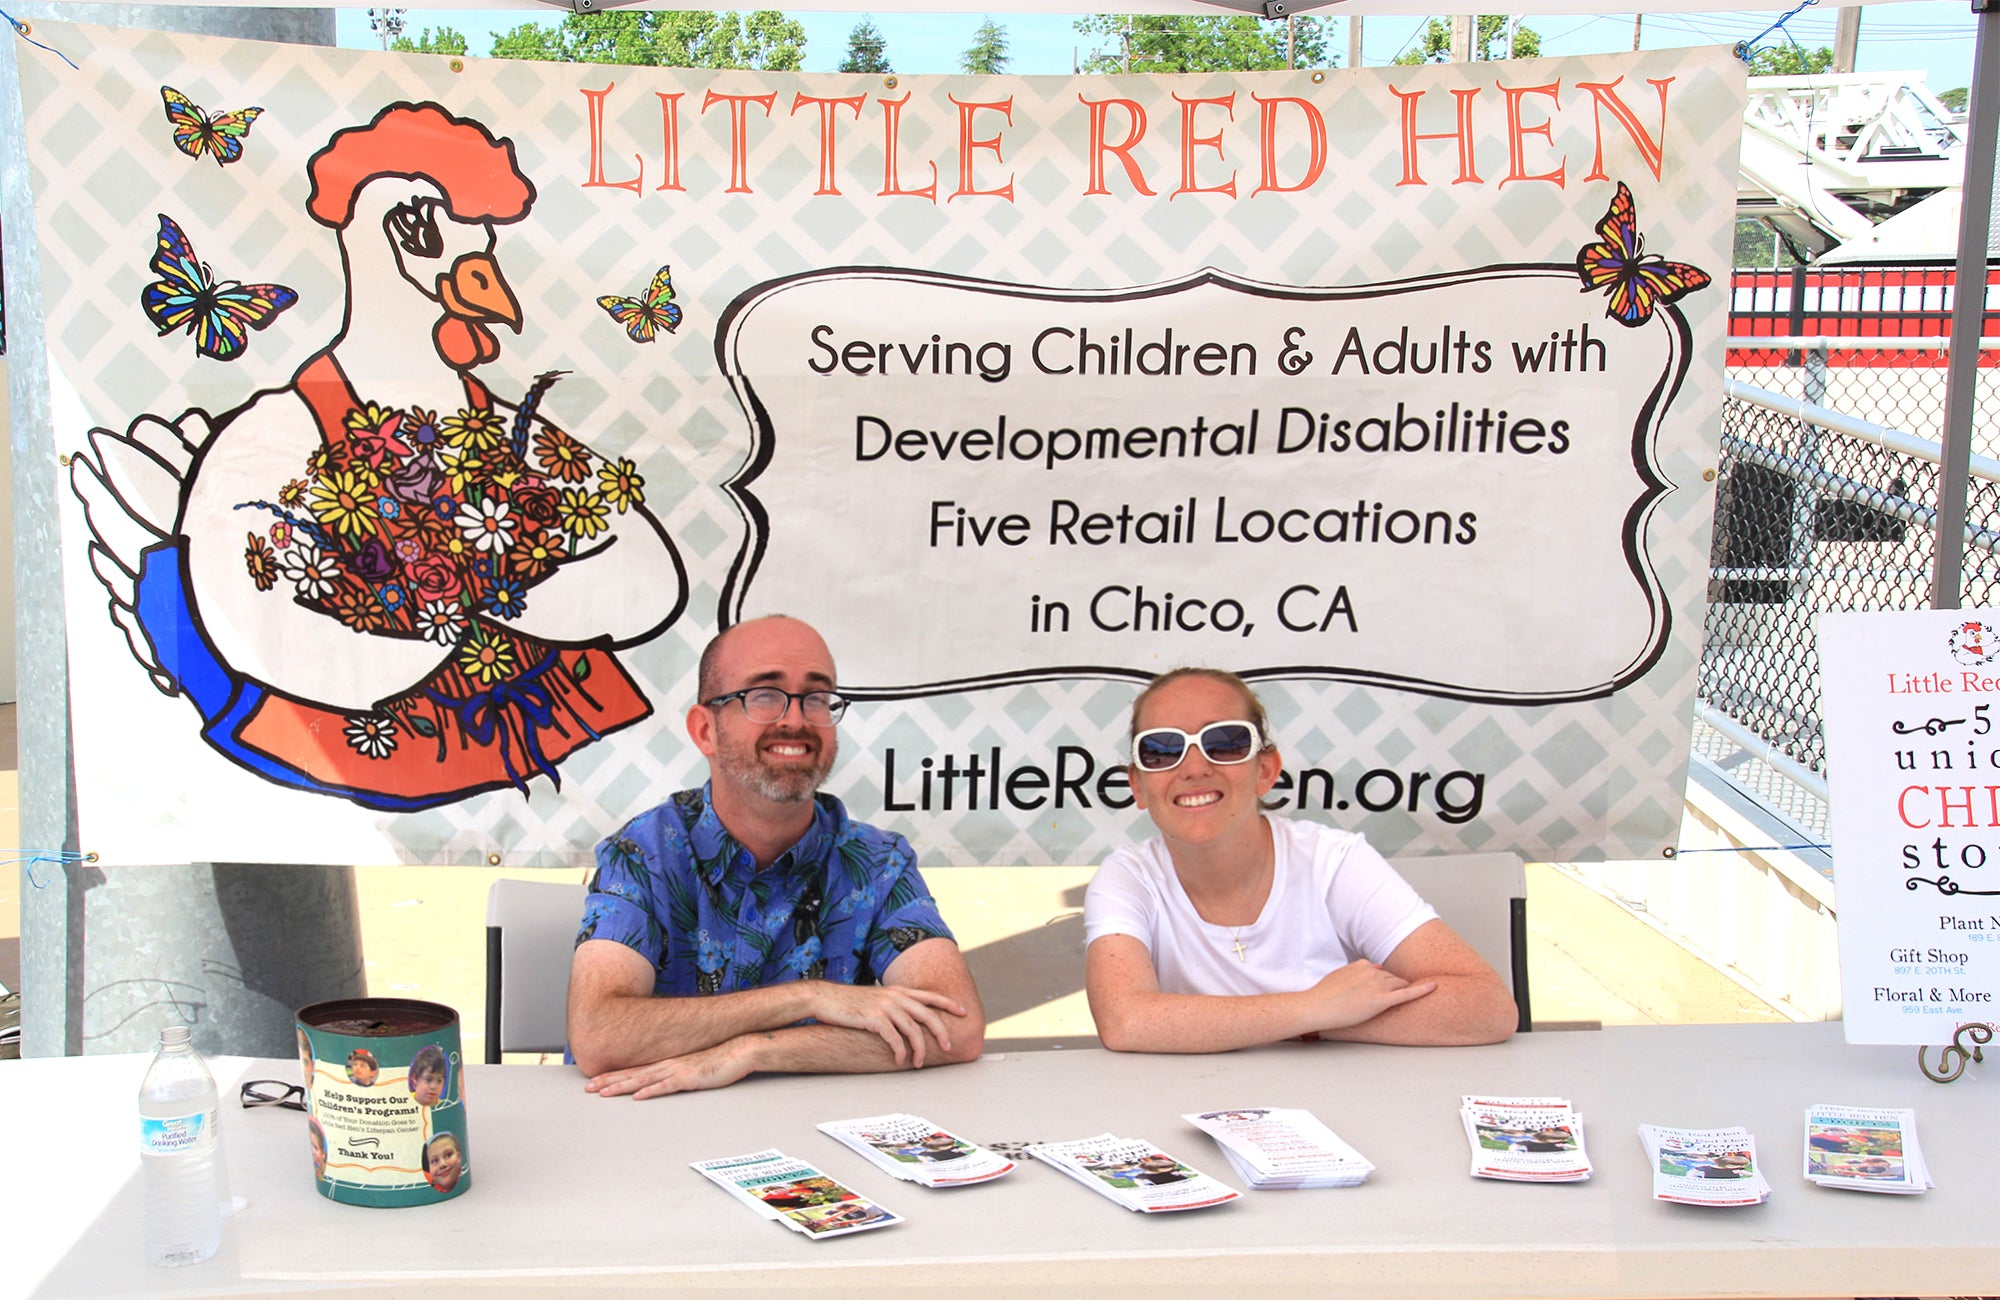 Little Red Hen Staff Members at an event booth